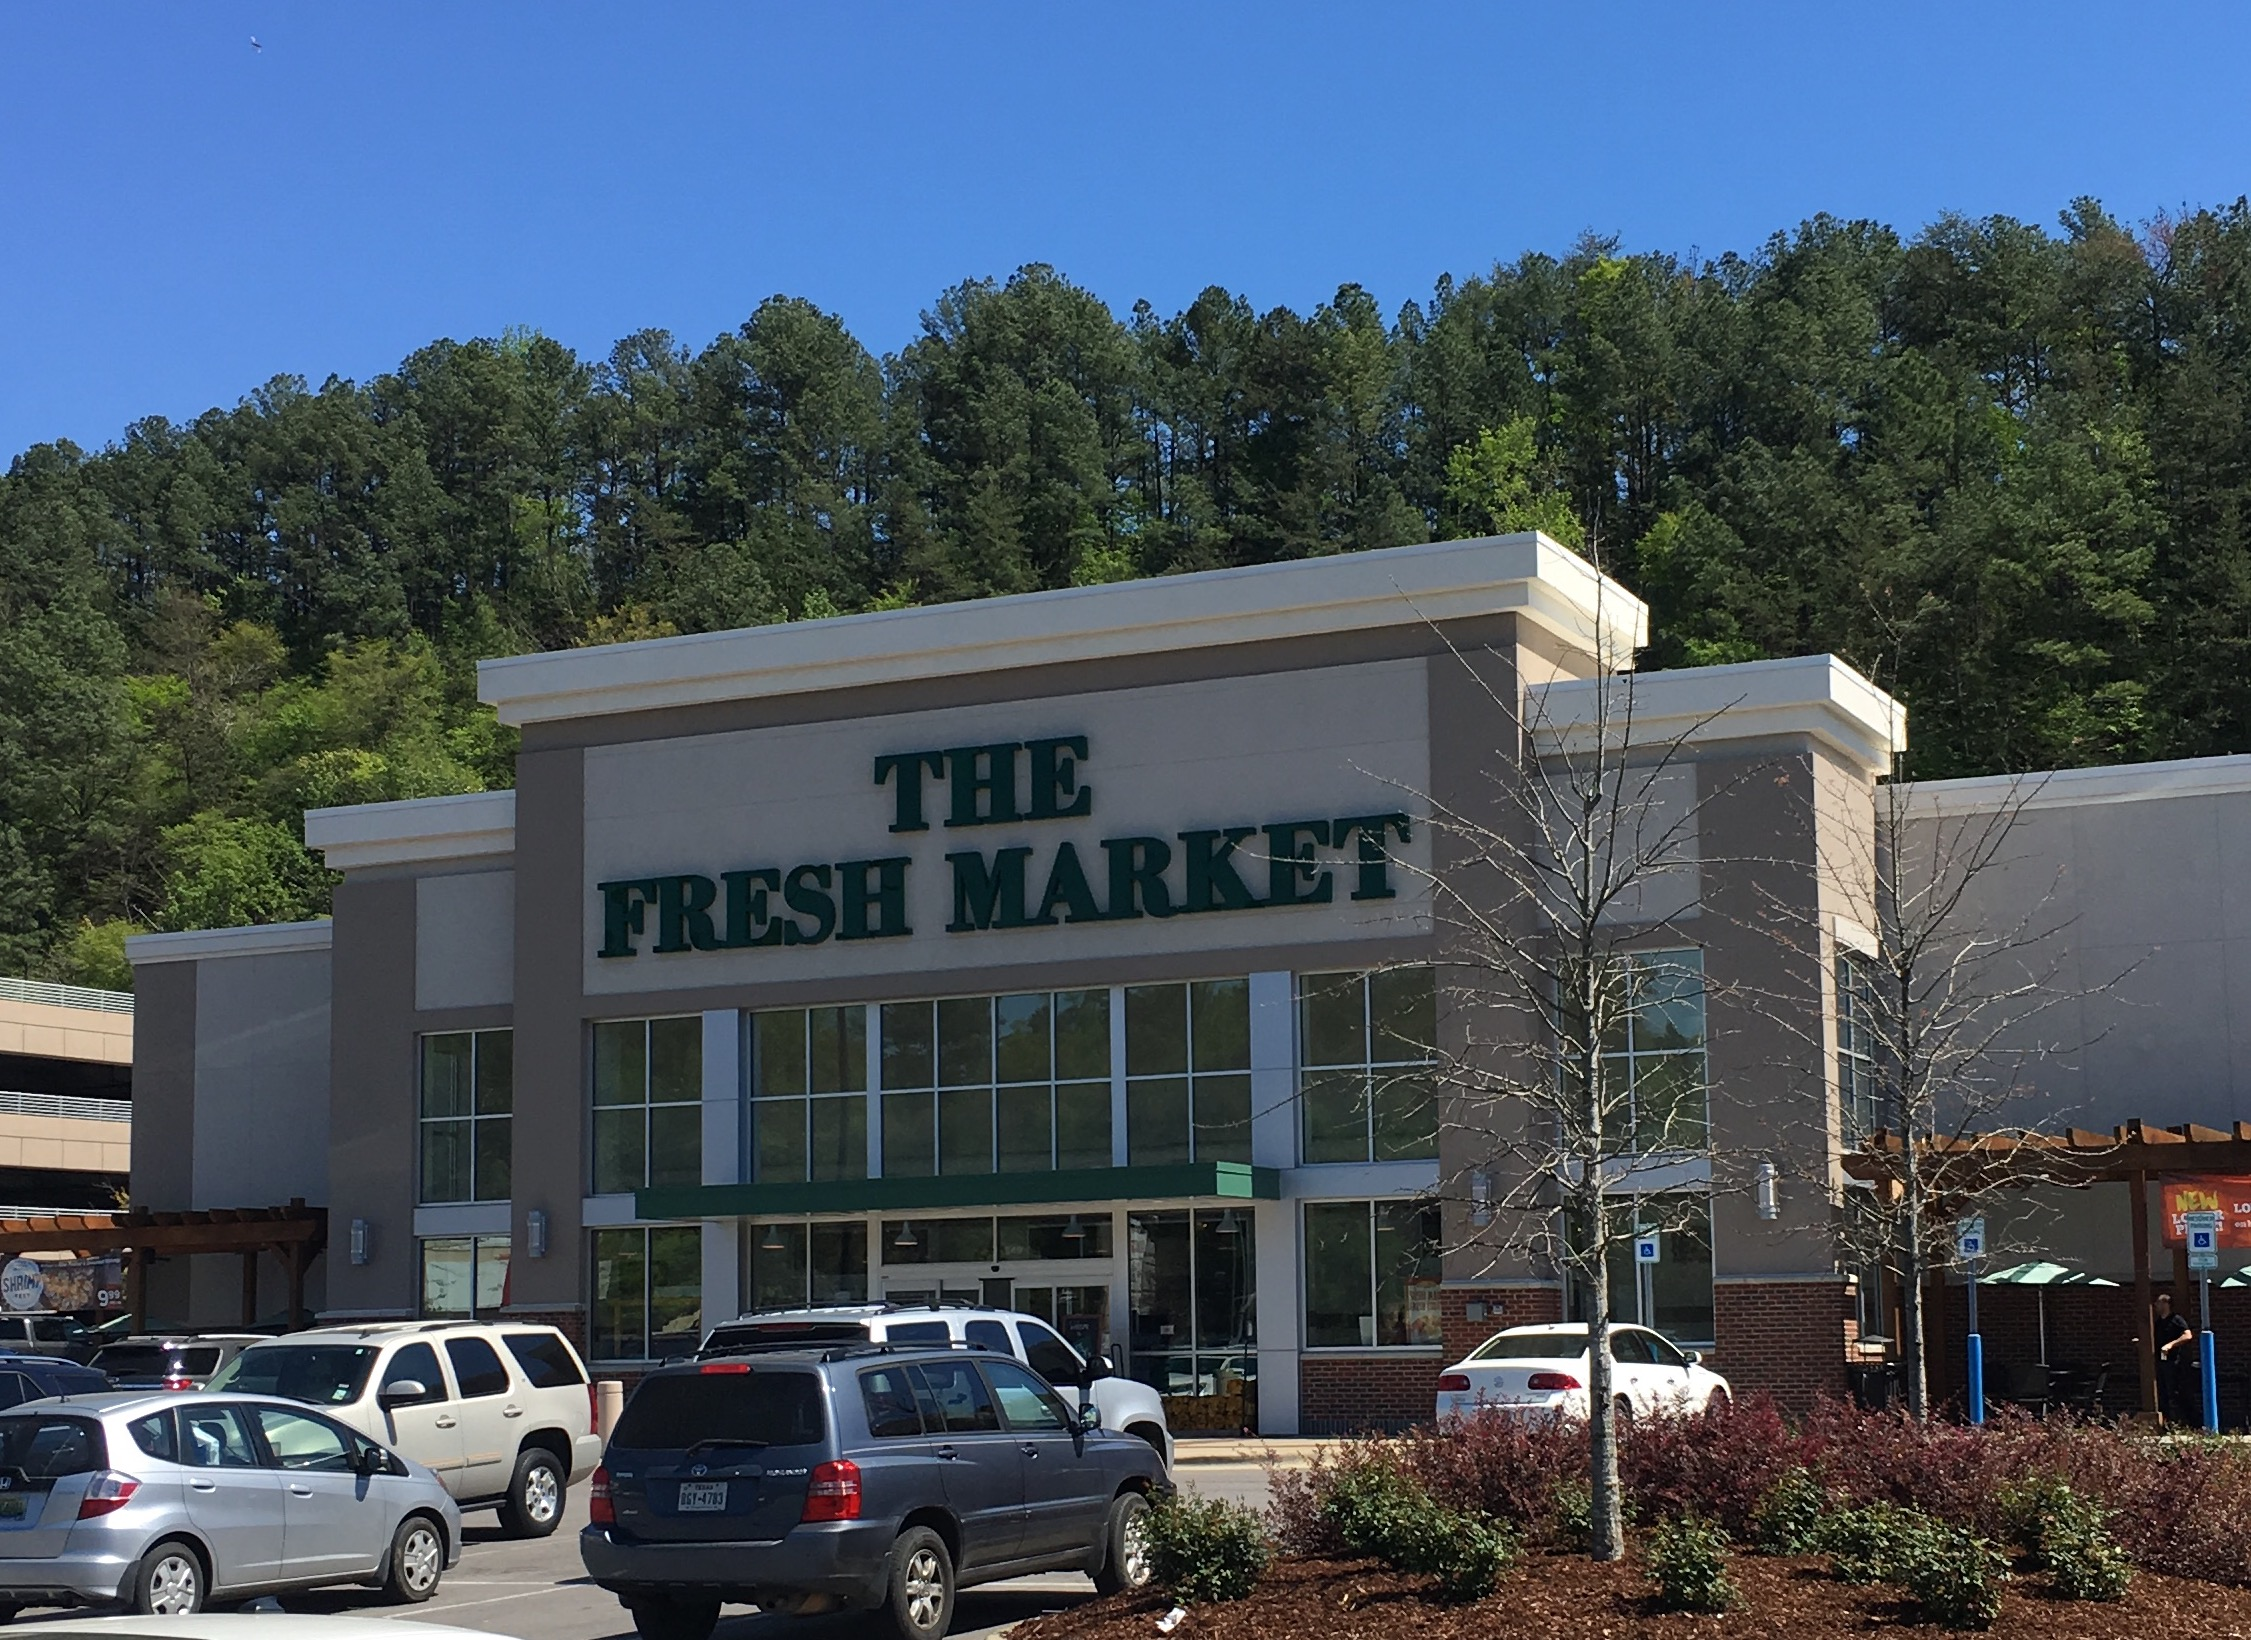 The Fresh Market brings their unique shopping experience to Trussville